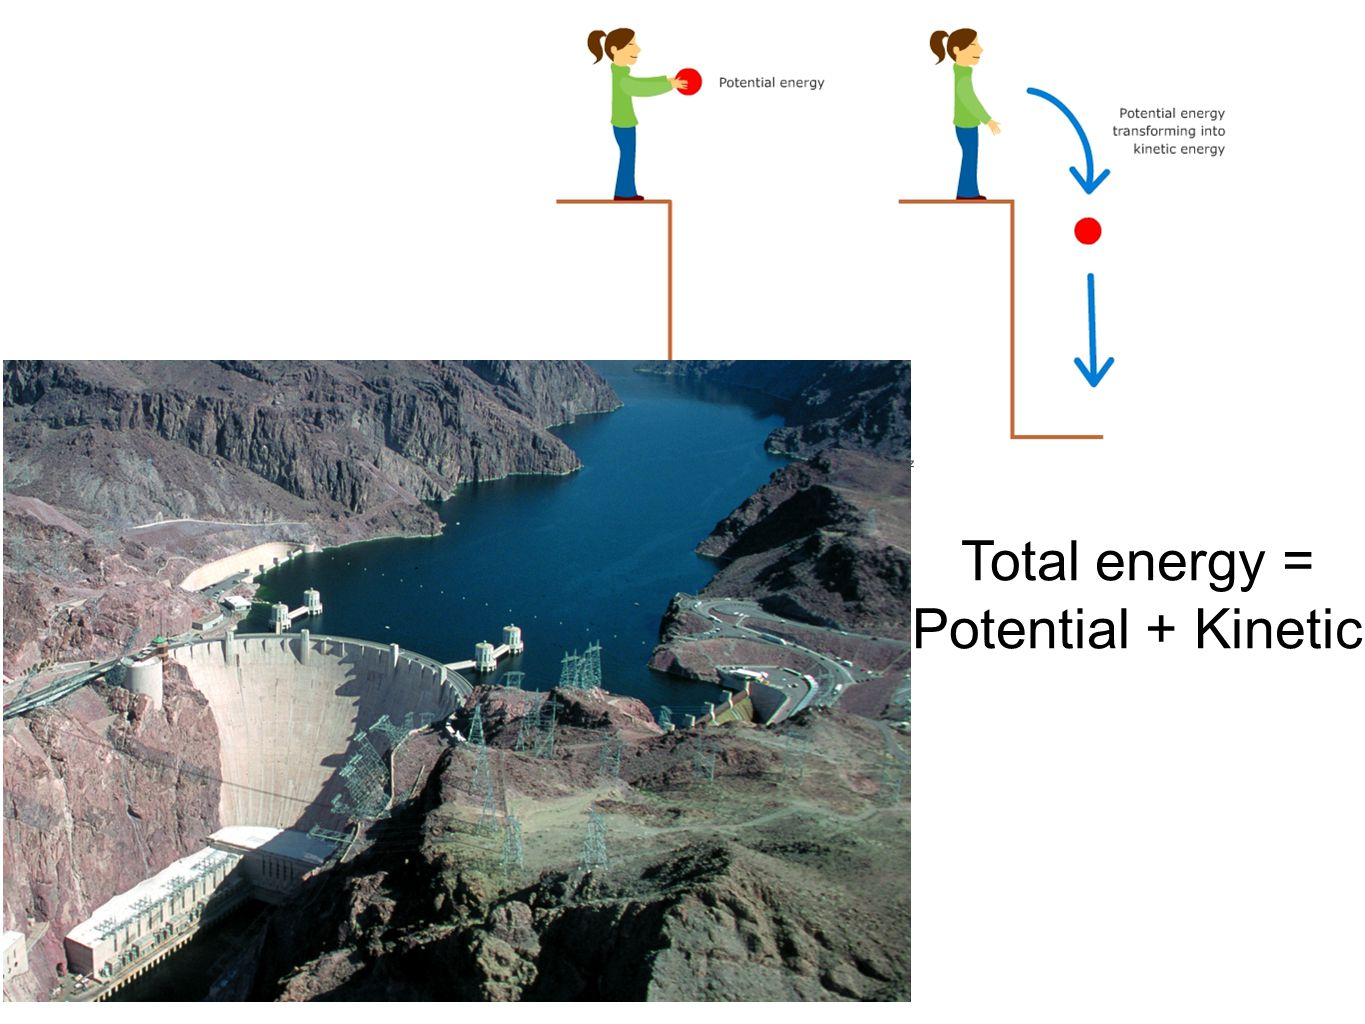 Total energy = Potential + Kinetic